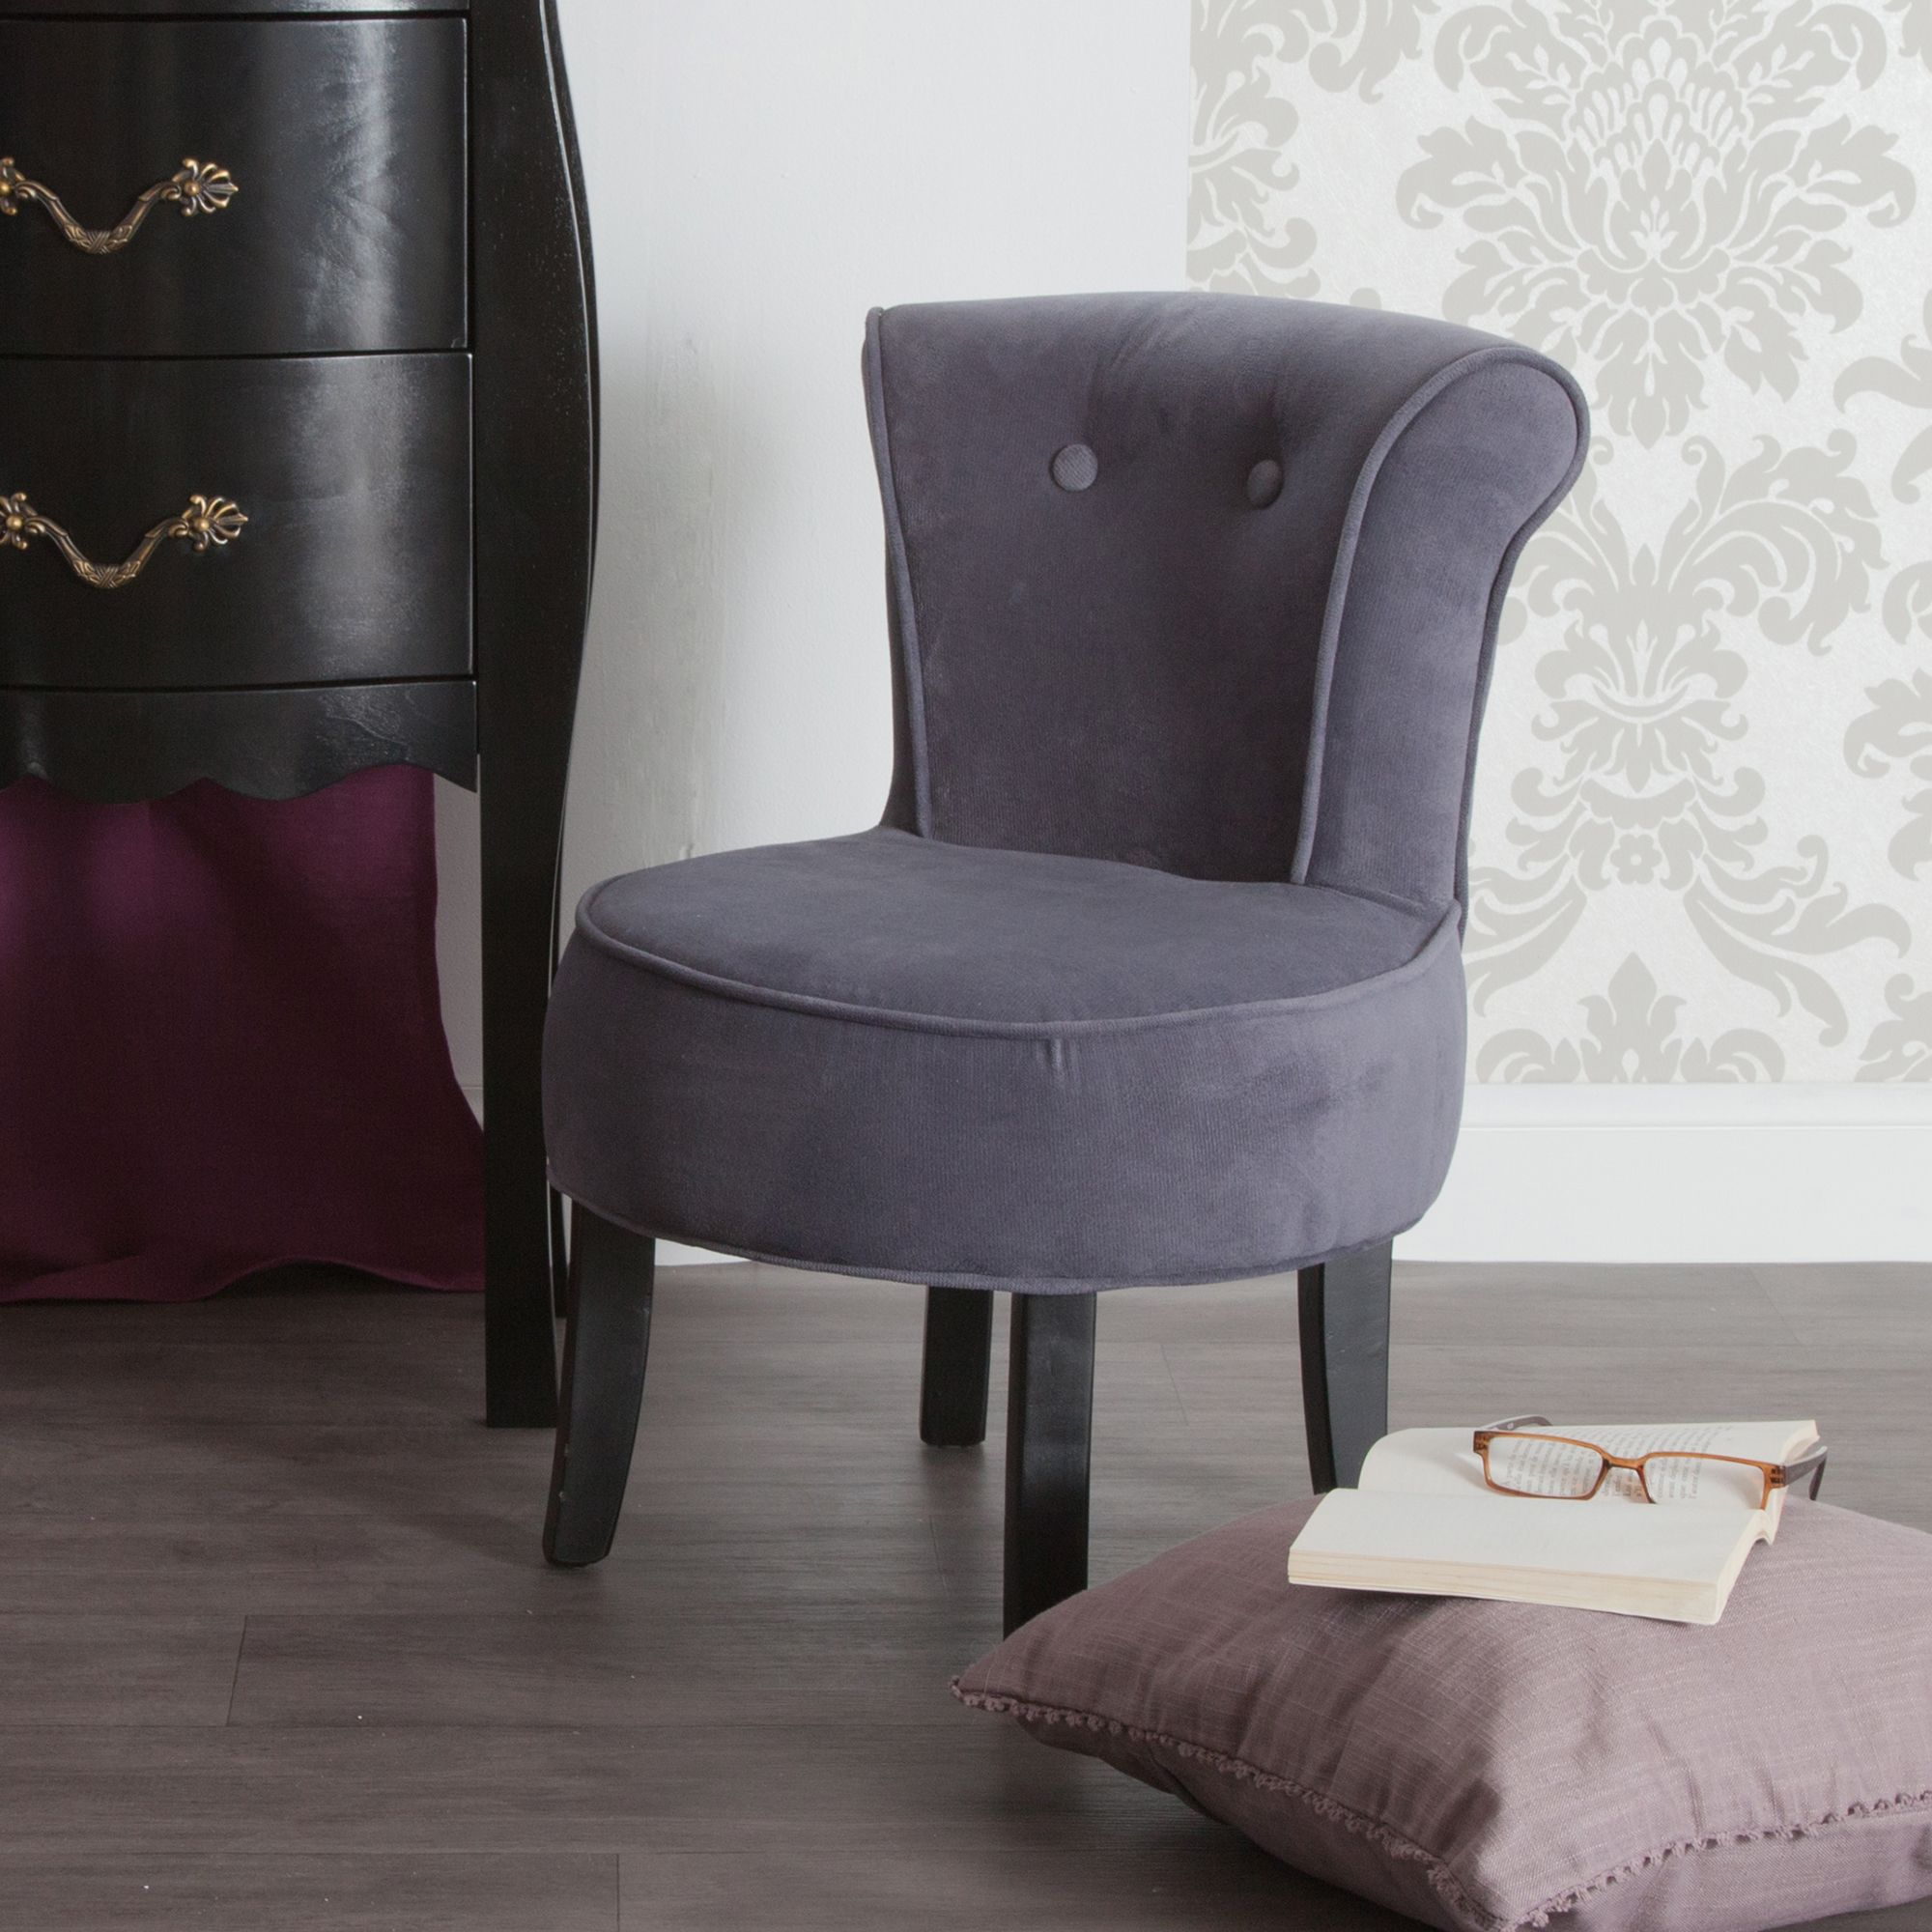 Impressionnant Petit Fauteuil Gris Chair Furniture Home Decor